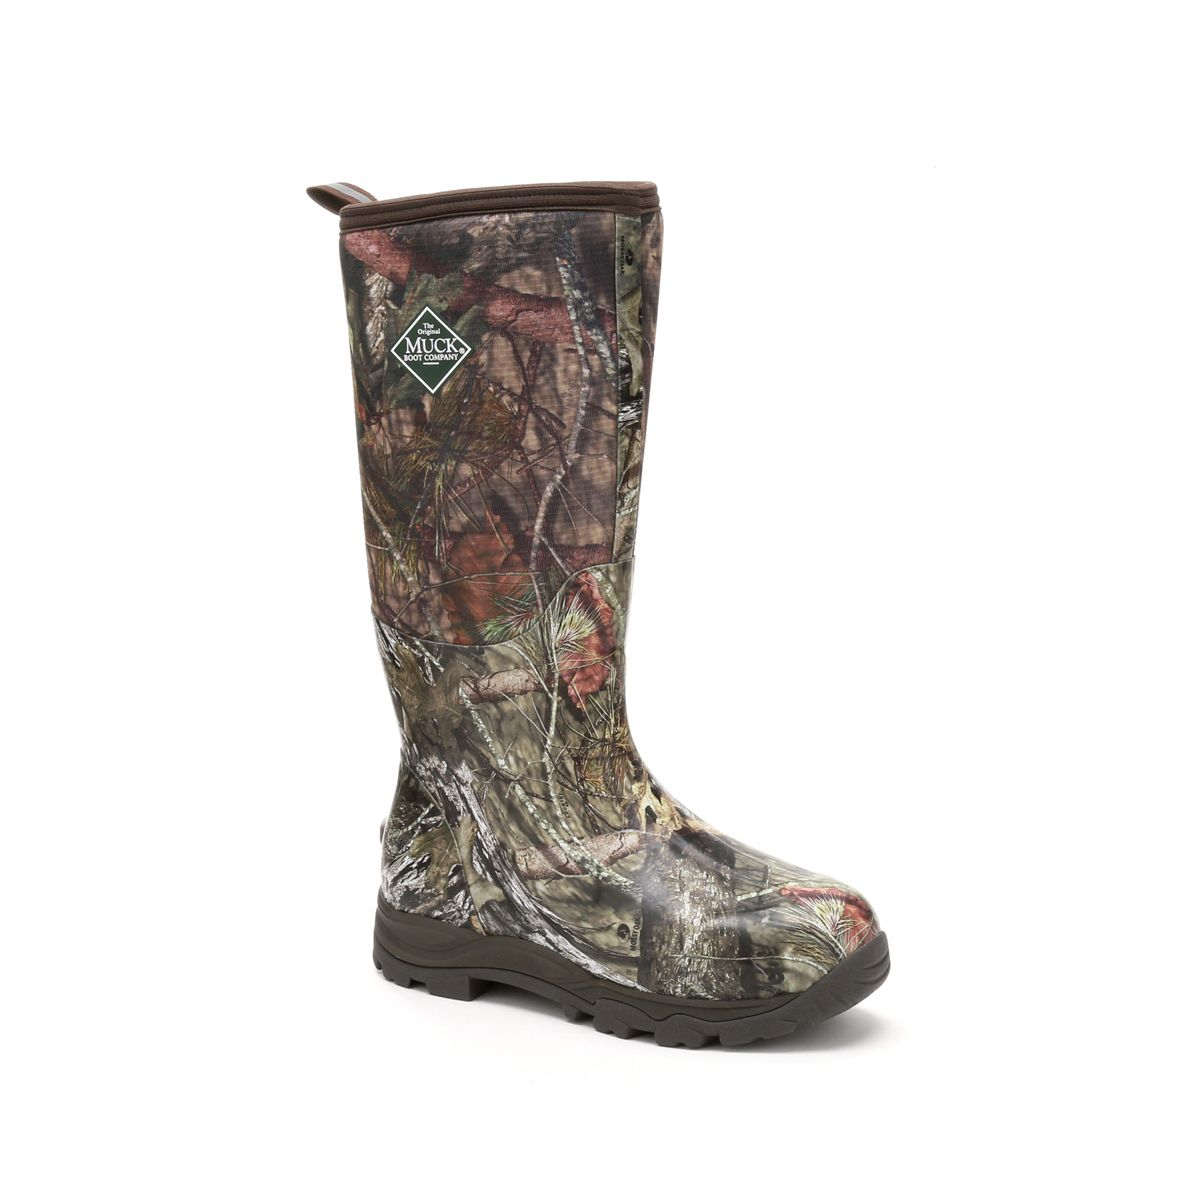 Botte imperméable et isolée Woody Plus - (Muck Boot WDP-MOCT)